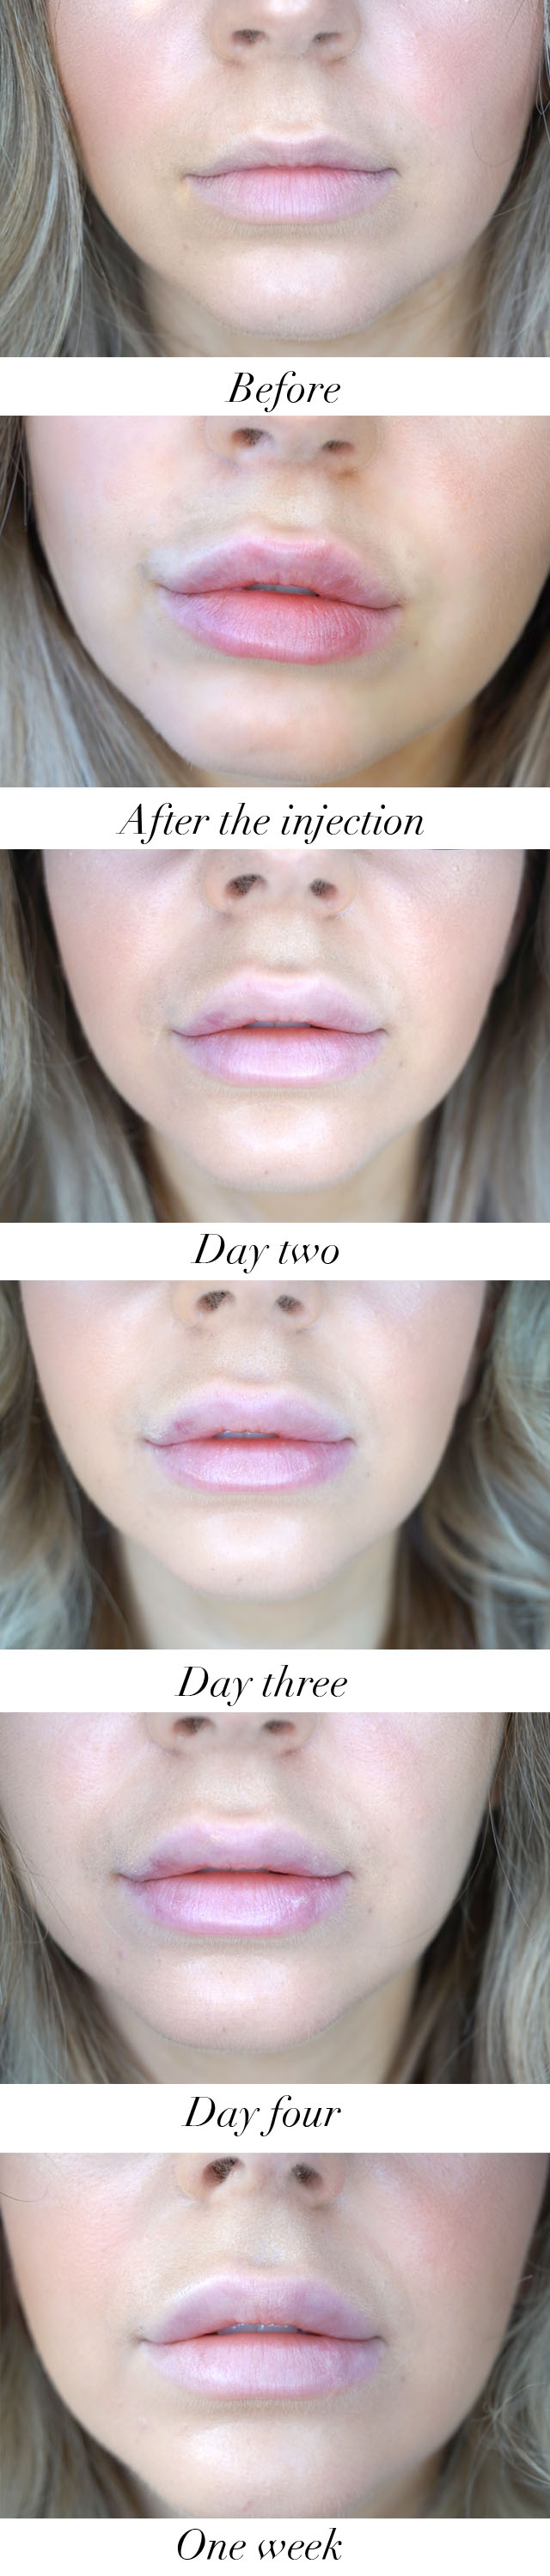 Lip fillers before and after photos